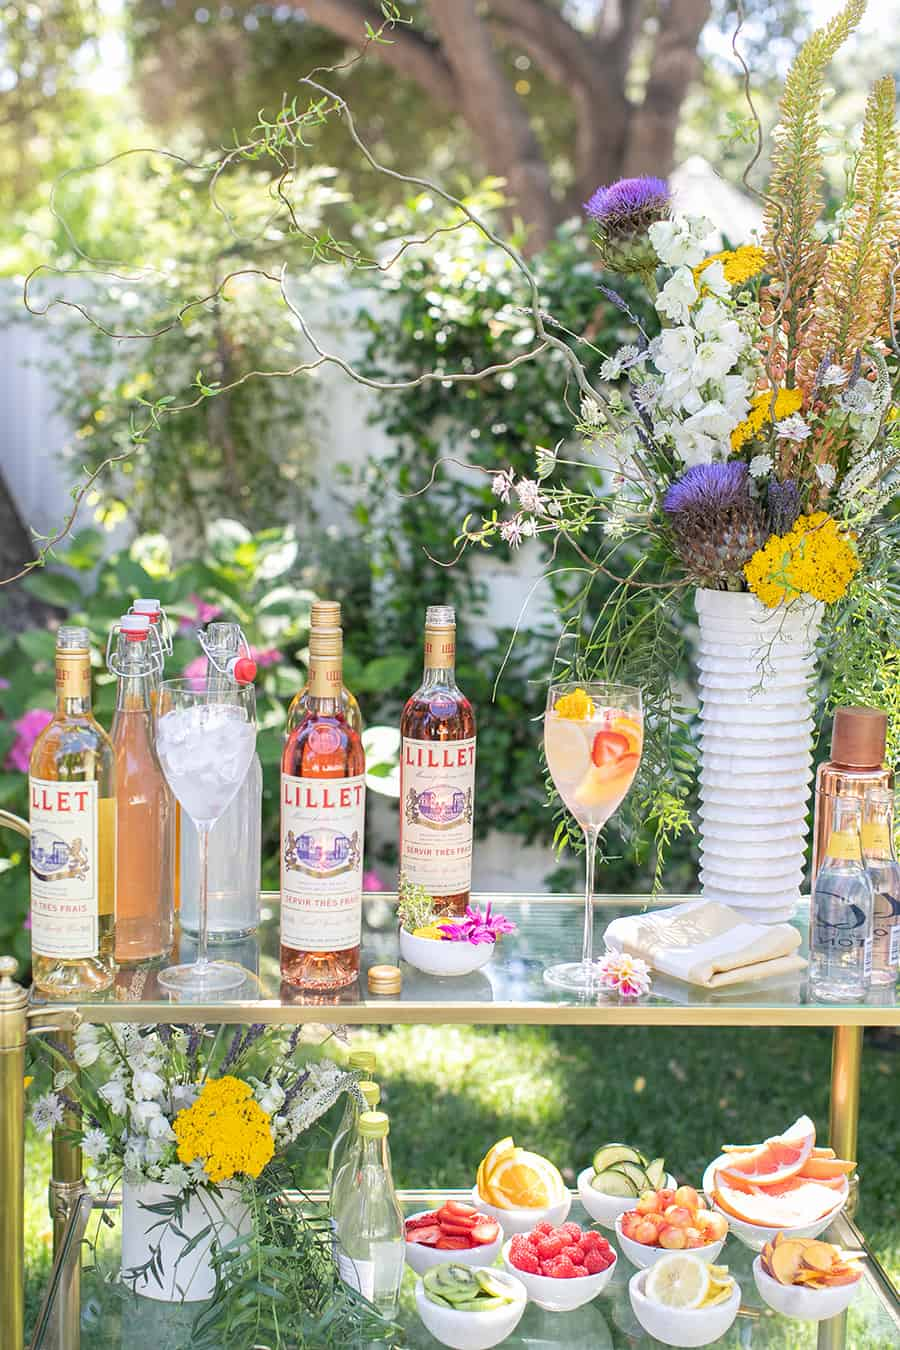 Spritzer bar with flowers, Lillet, cocktails and flowers.